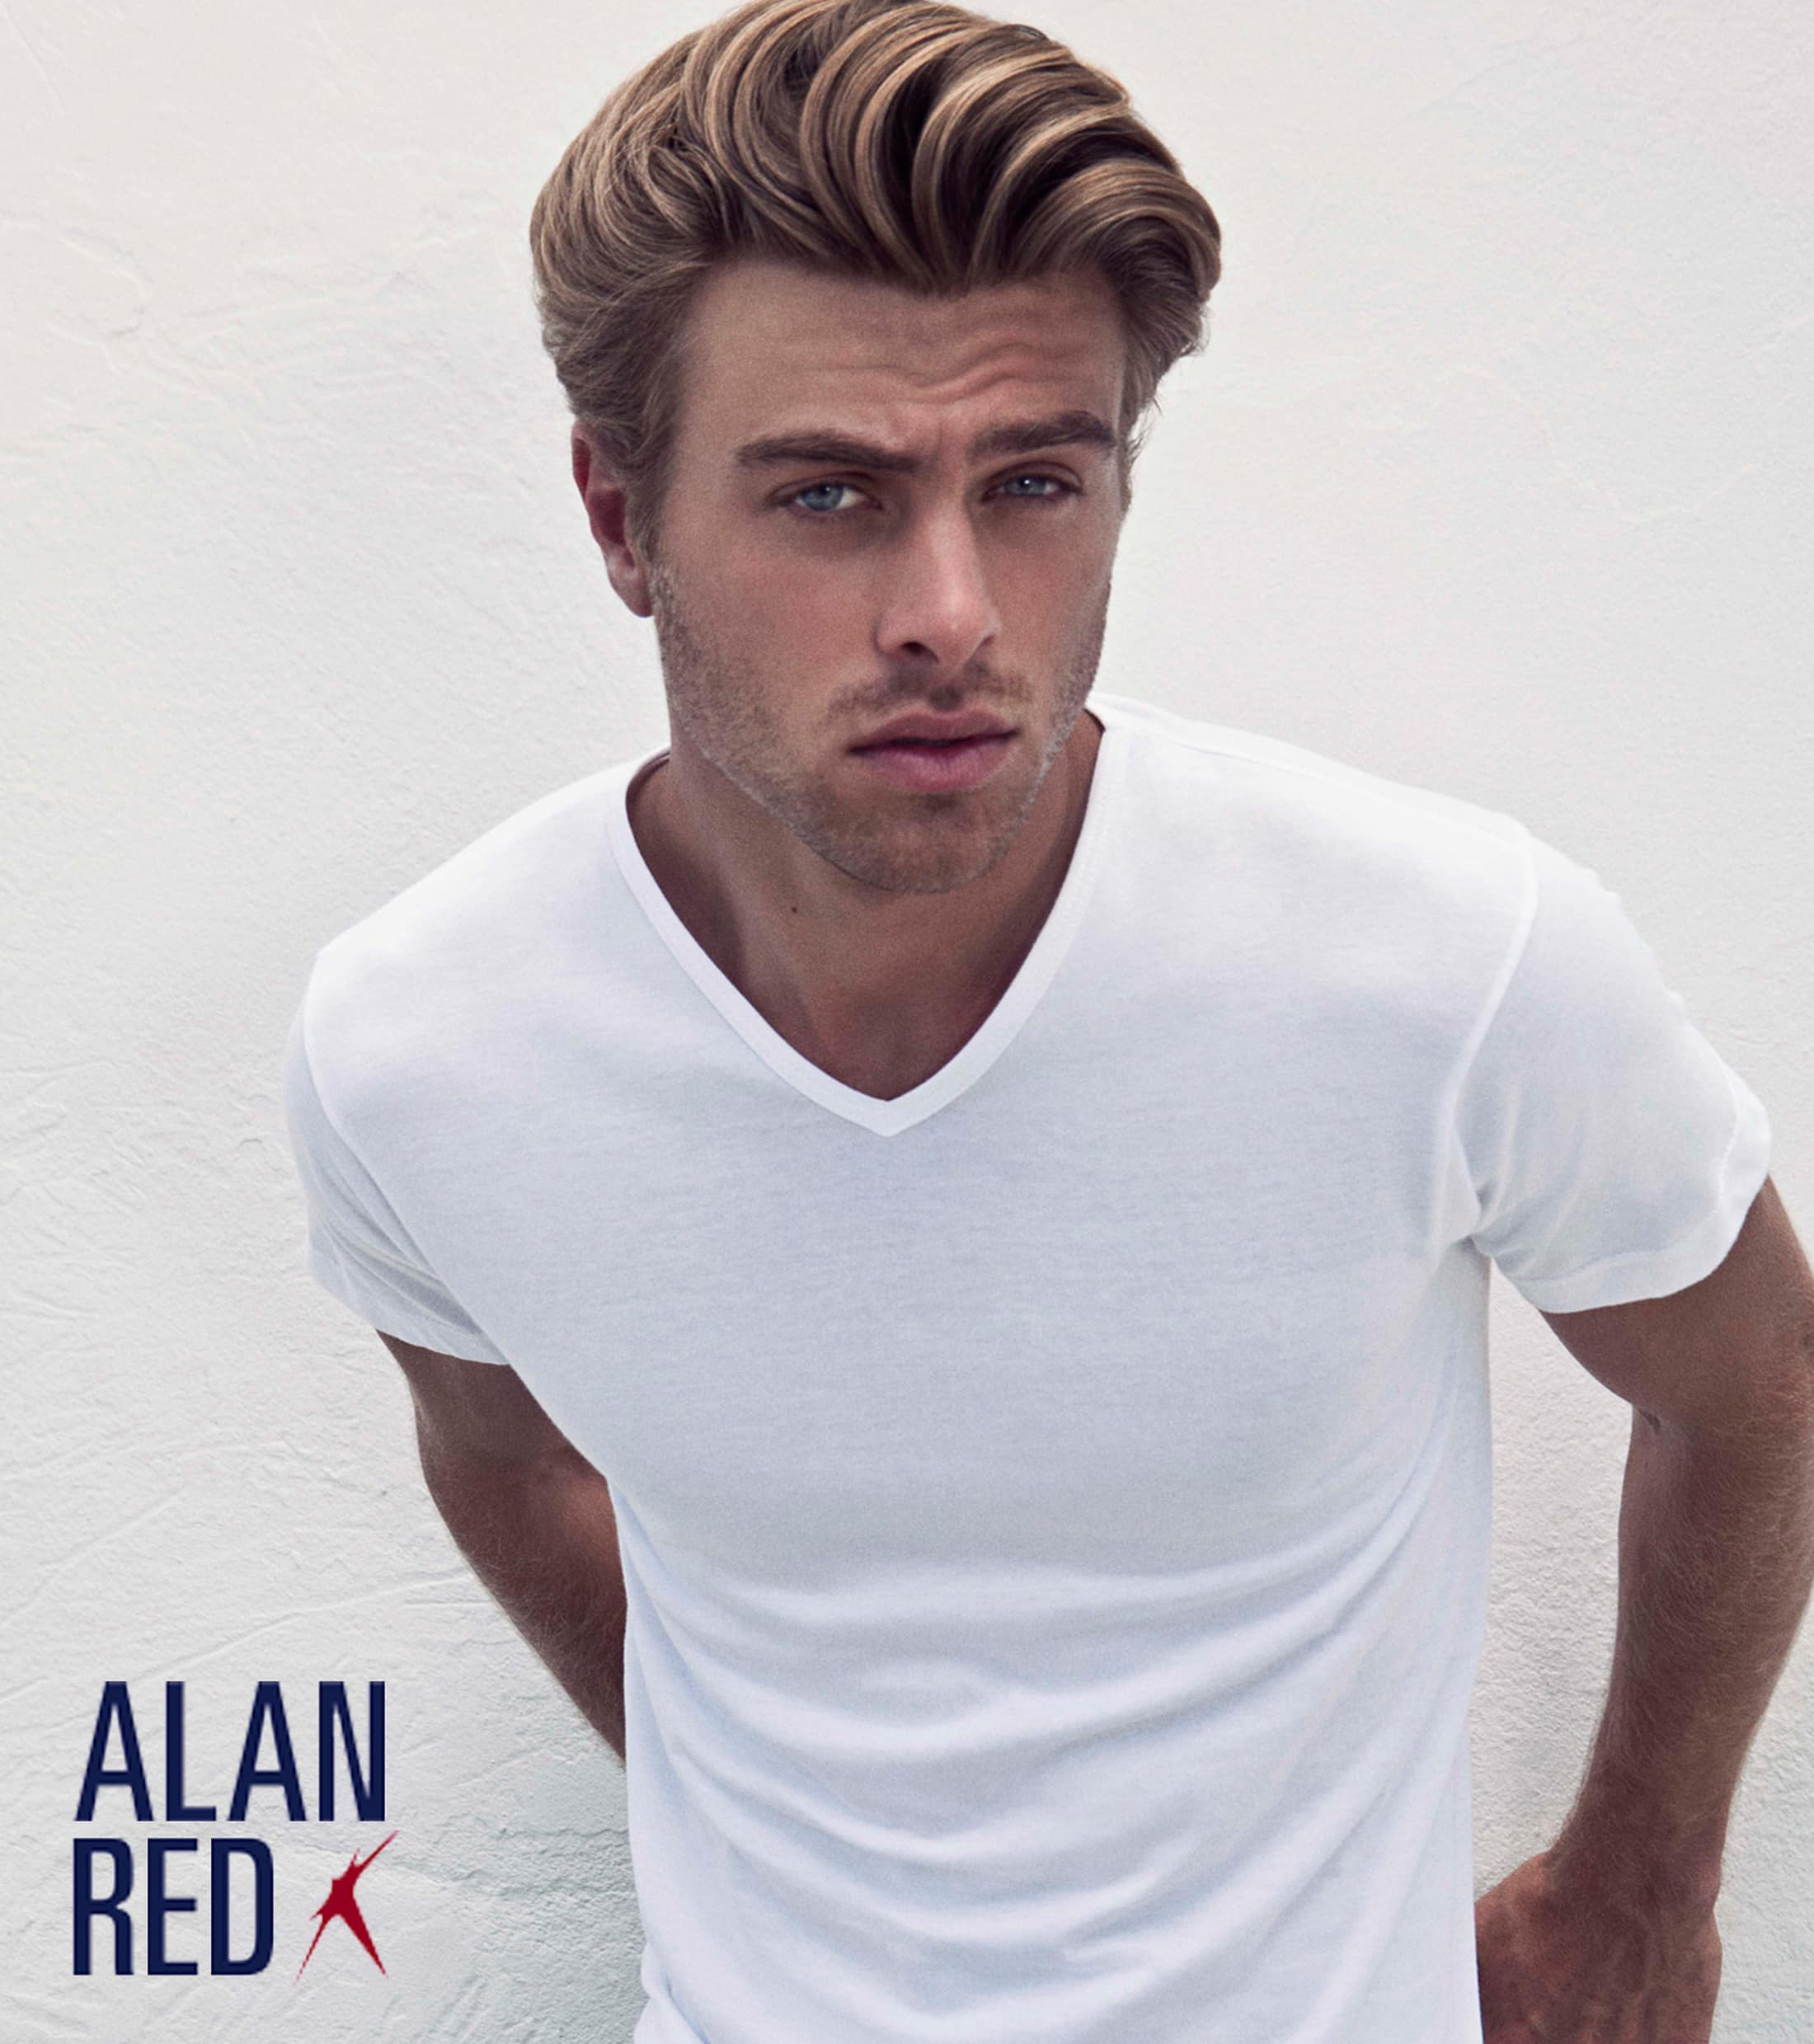 Alan Red Vermont T-shirt V-Neck Red 1-Pack foto 3